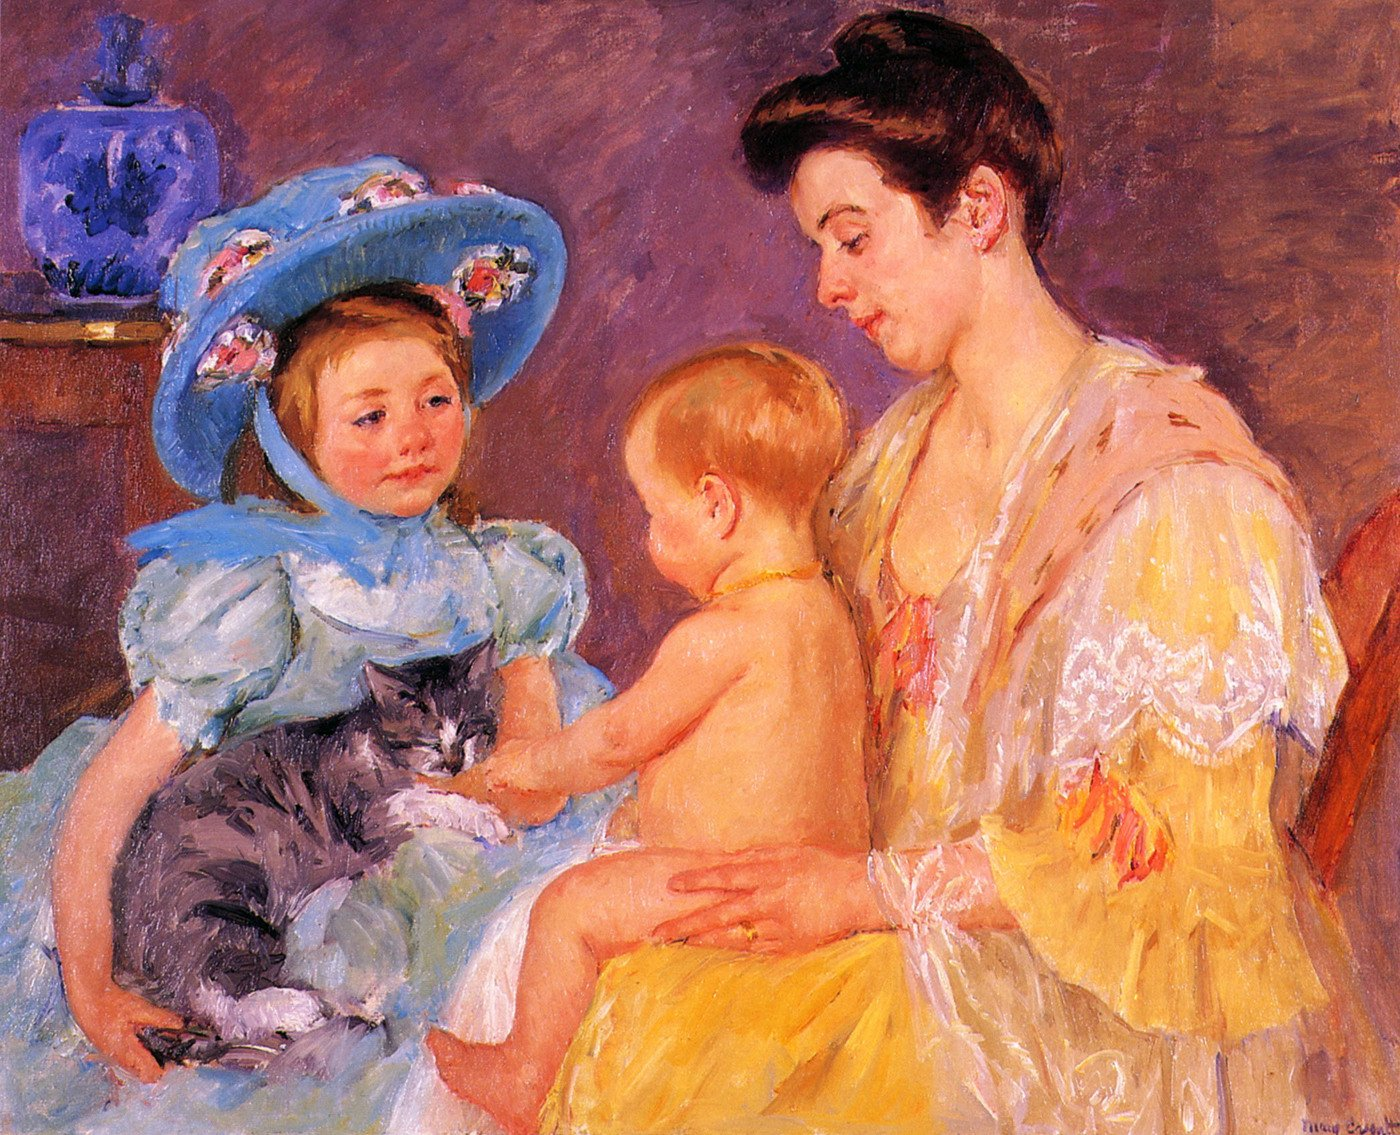 Mary Cassatt background